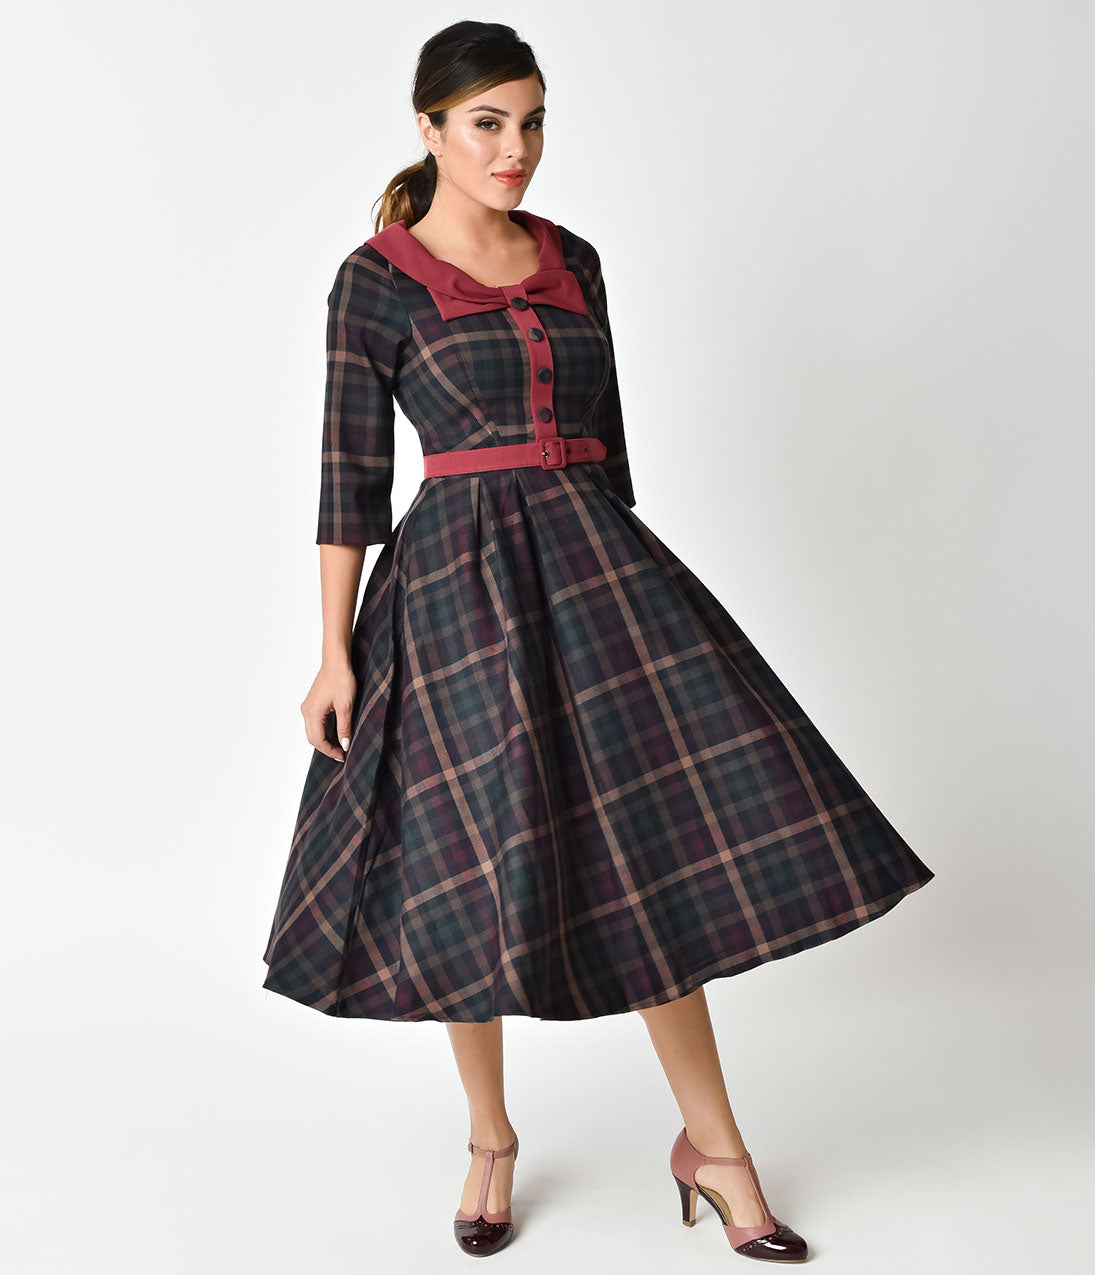 1940s Style Dresses | 40s Dress, Swing Dress 1940s Style Dark Plaid Sleeved Kellie Alberta Swing Dress $152.00 AT vintagedancer.com